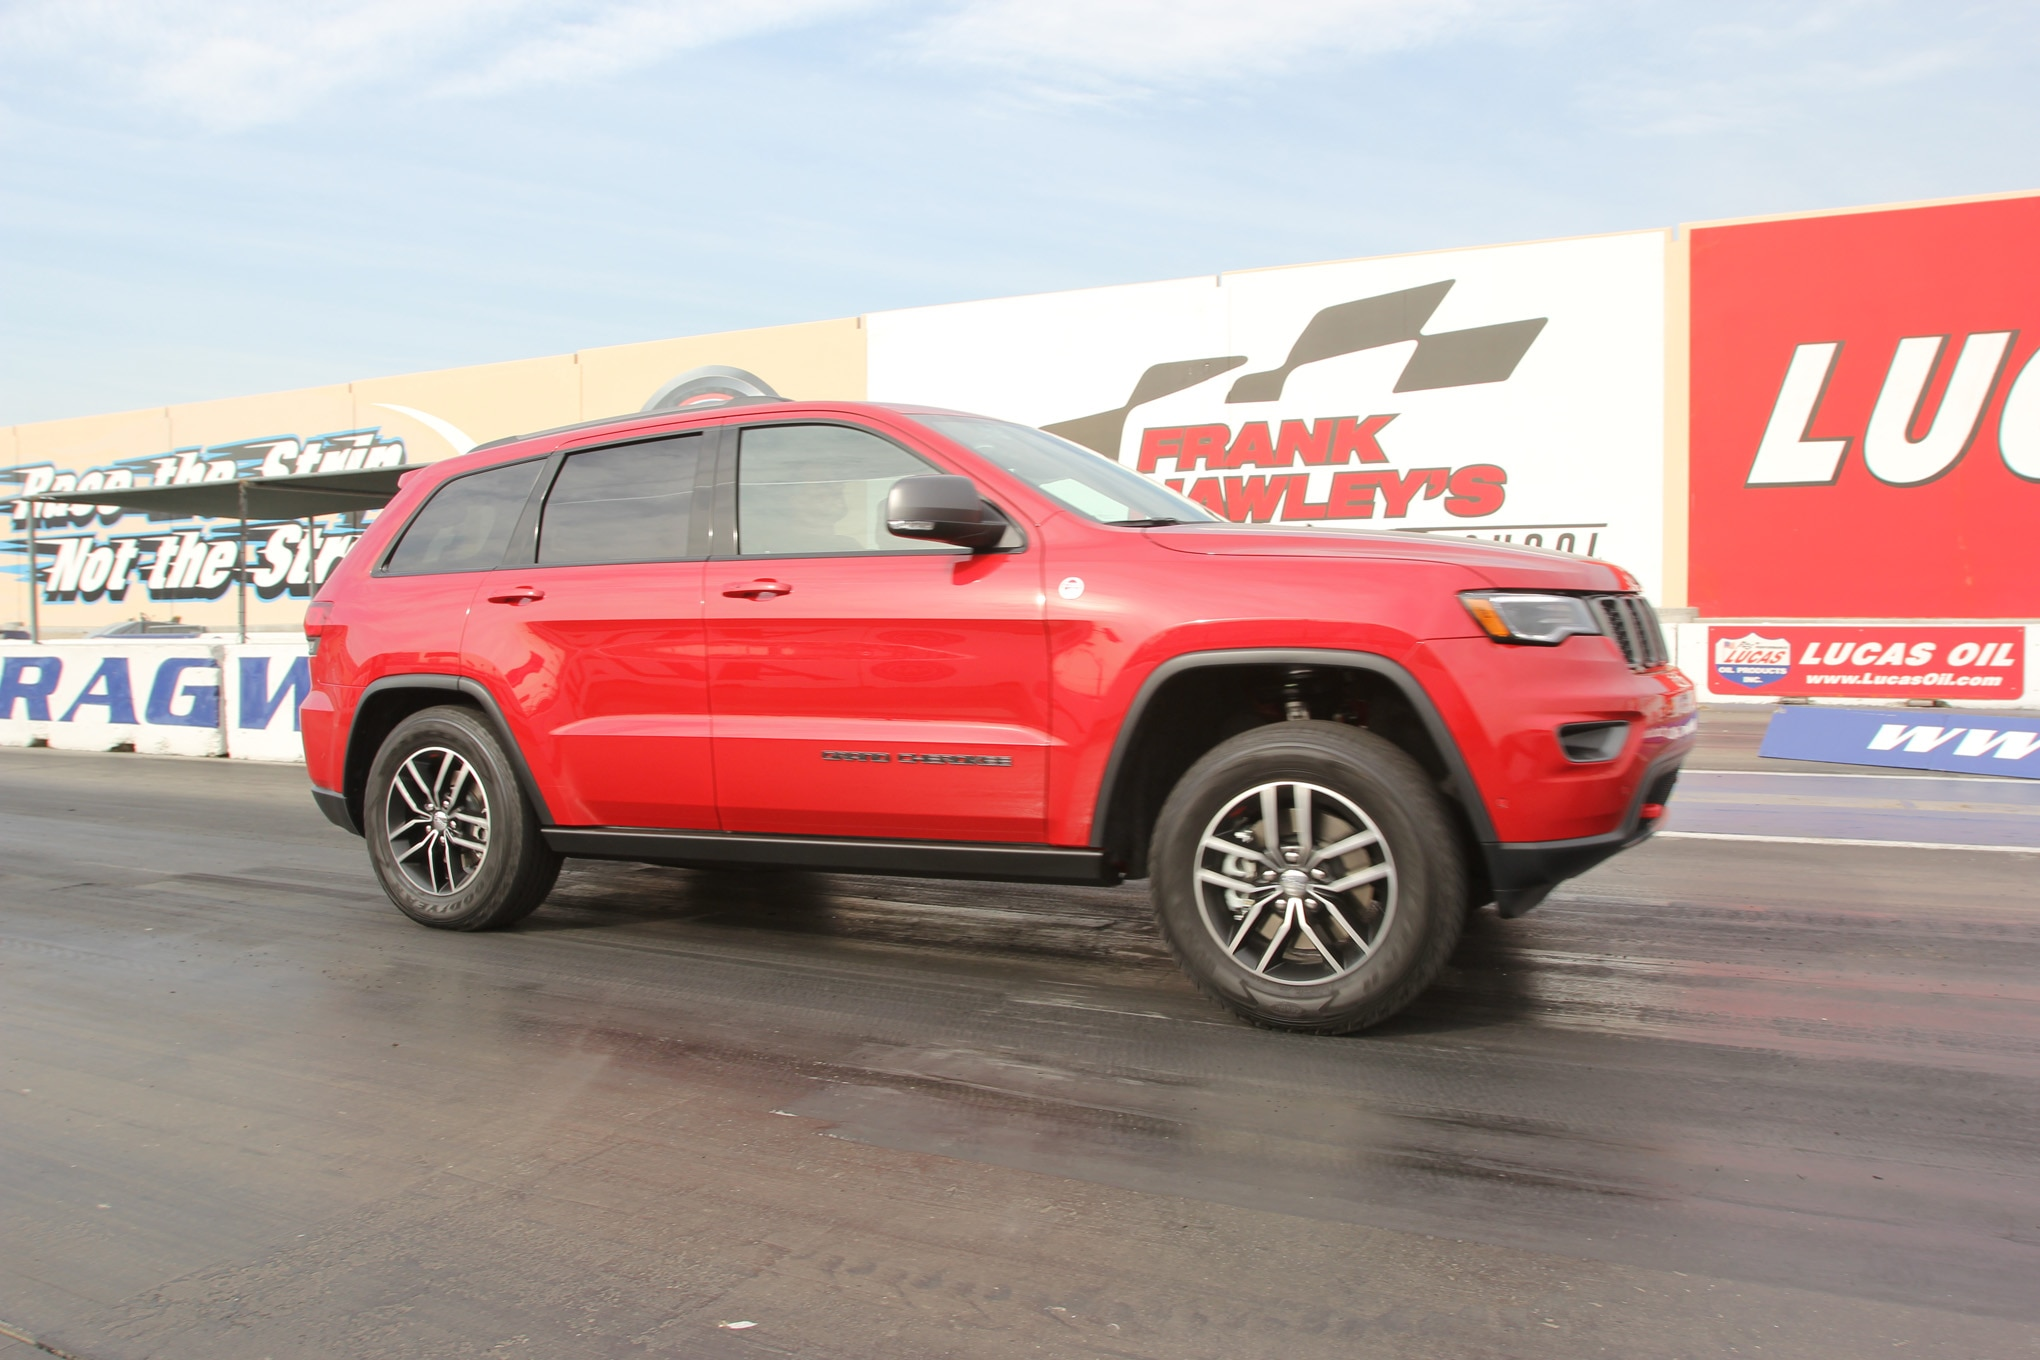 122 suv of the year